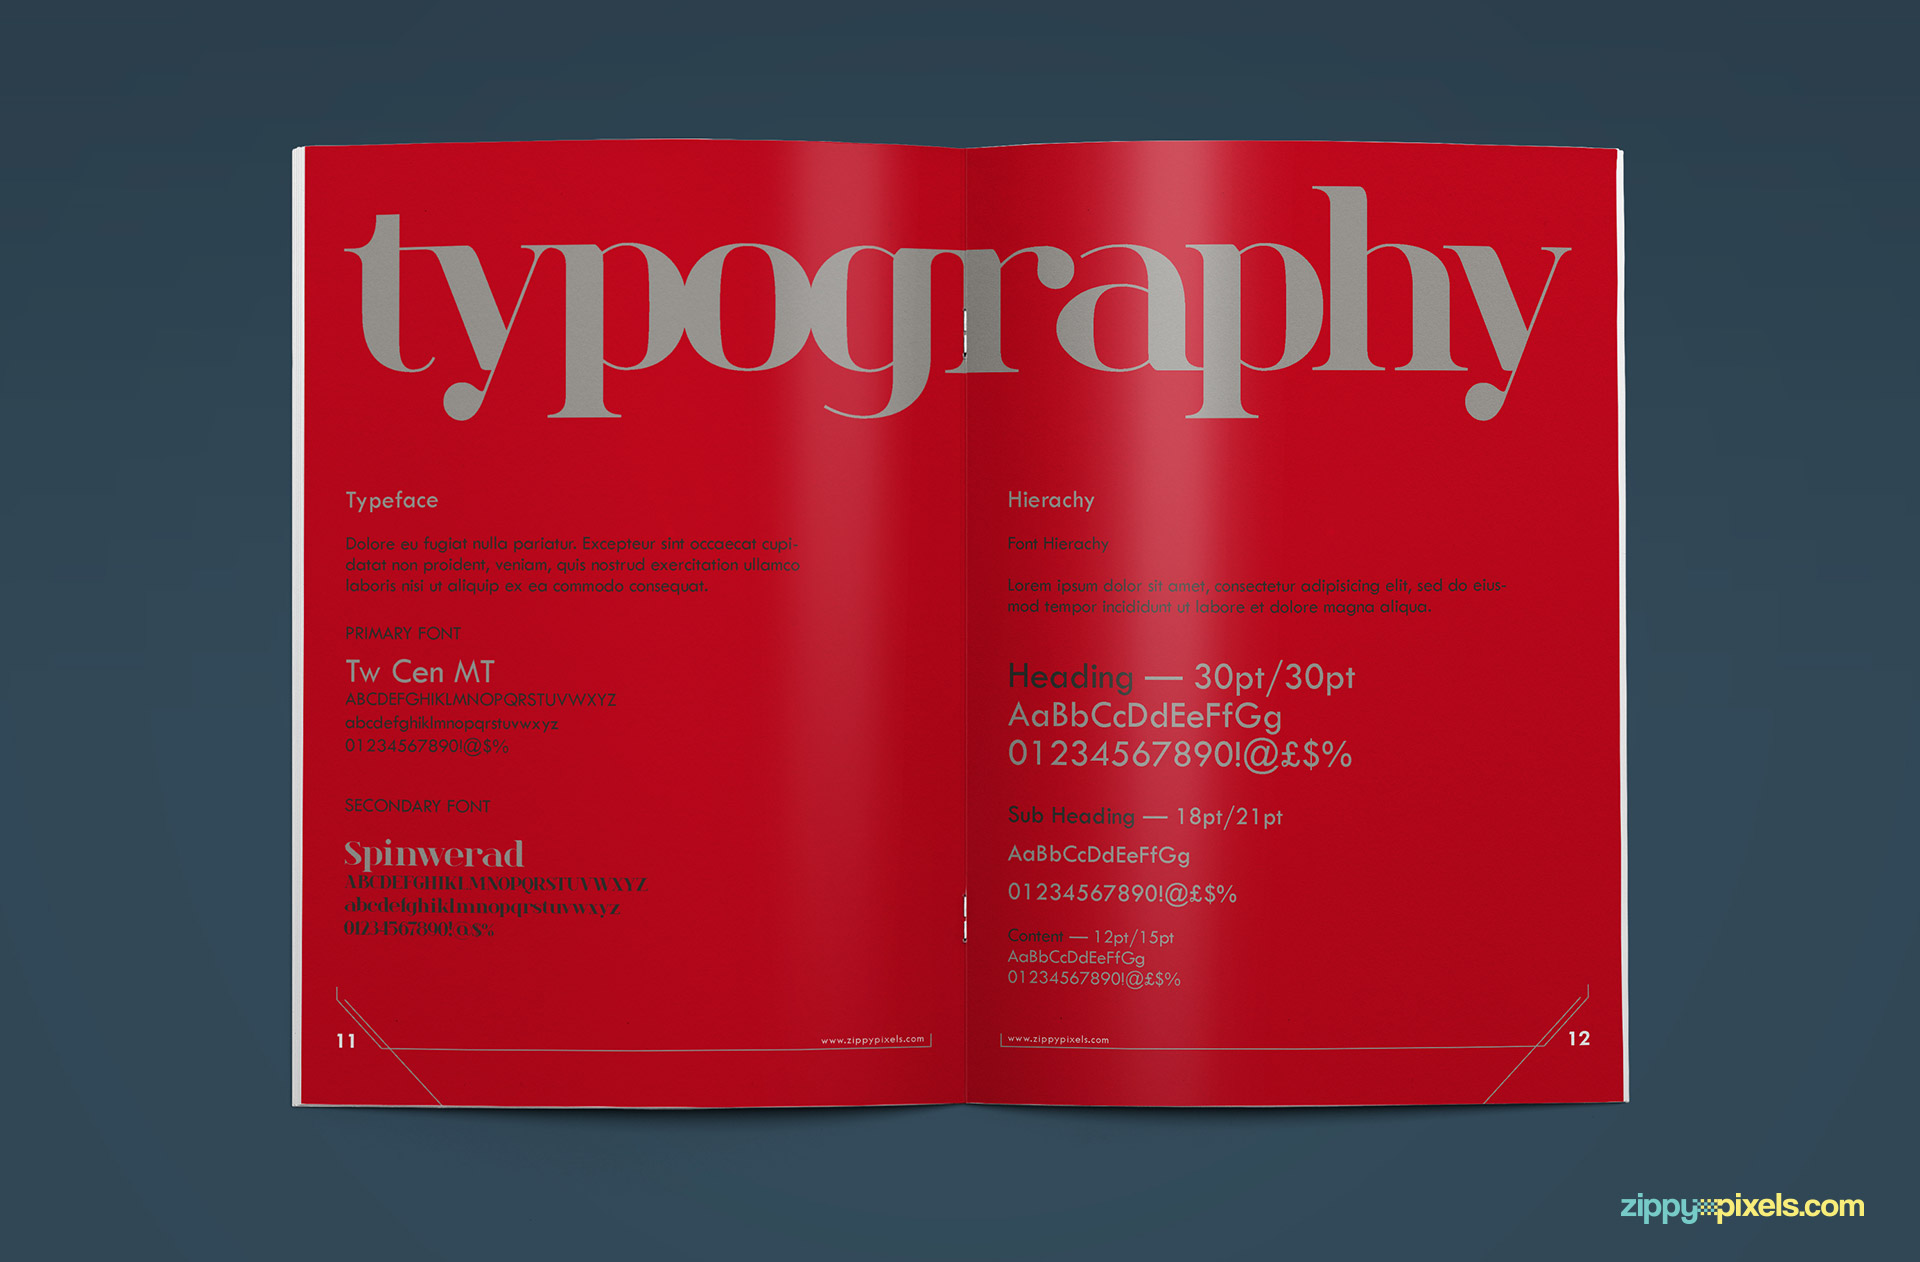 09-brand-book-10-typography